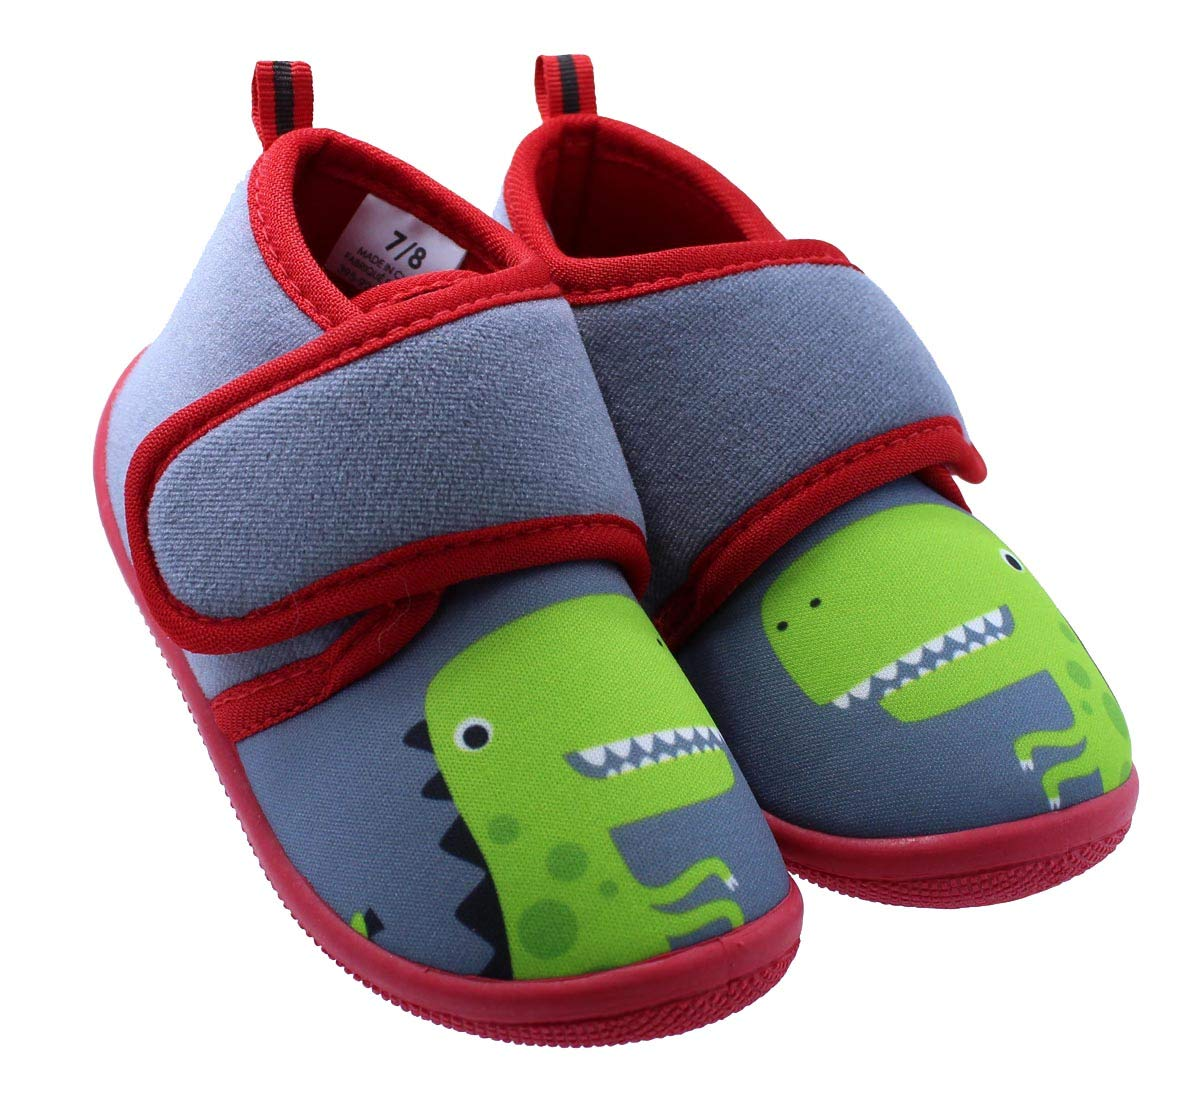 Black and White Dinosaur Toddler Boy's Daycare Slippers (5-6 M US Toddler)